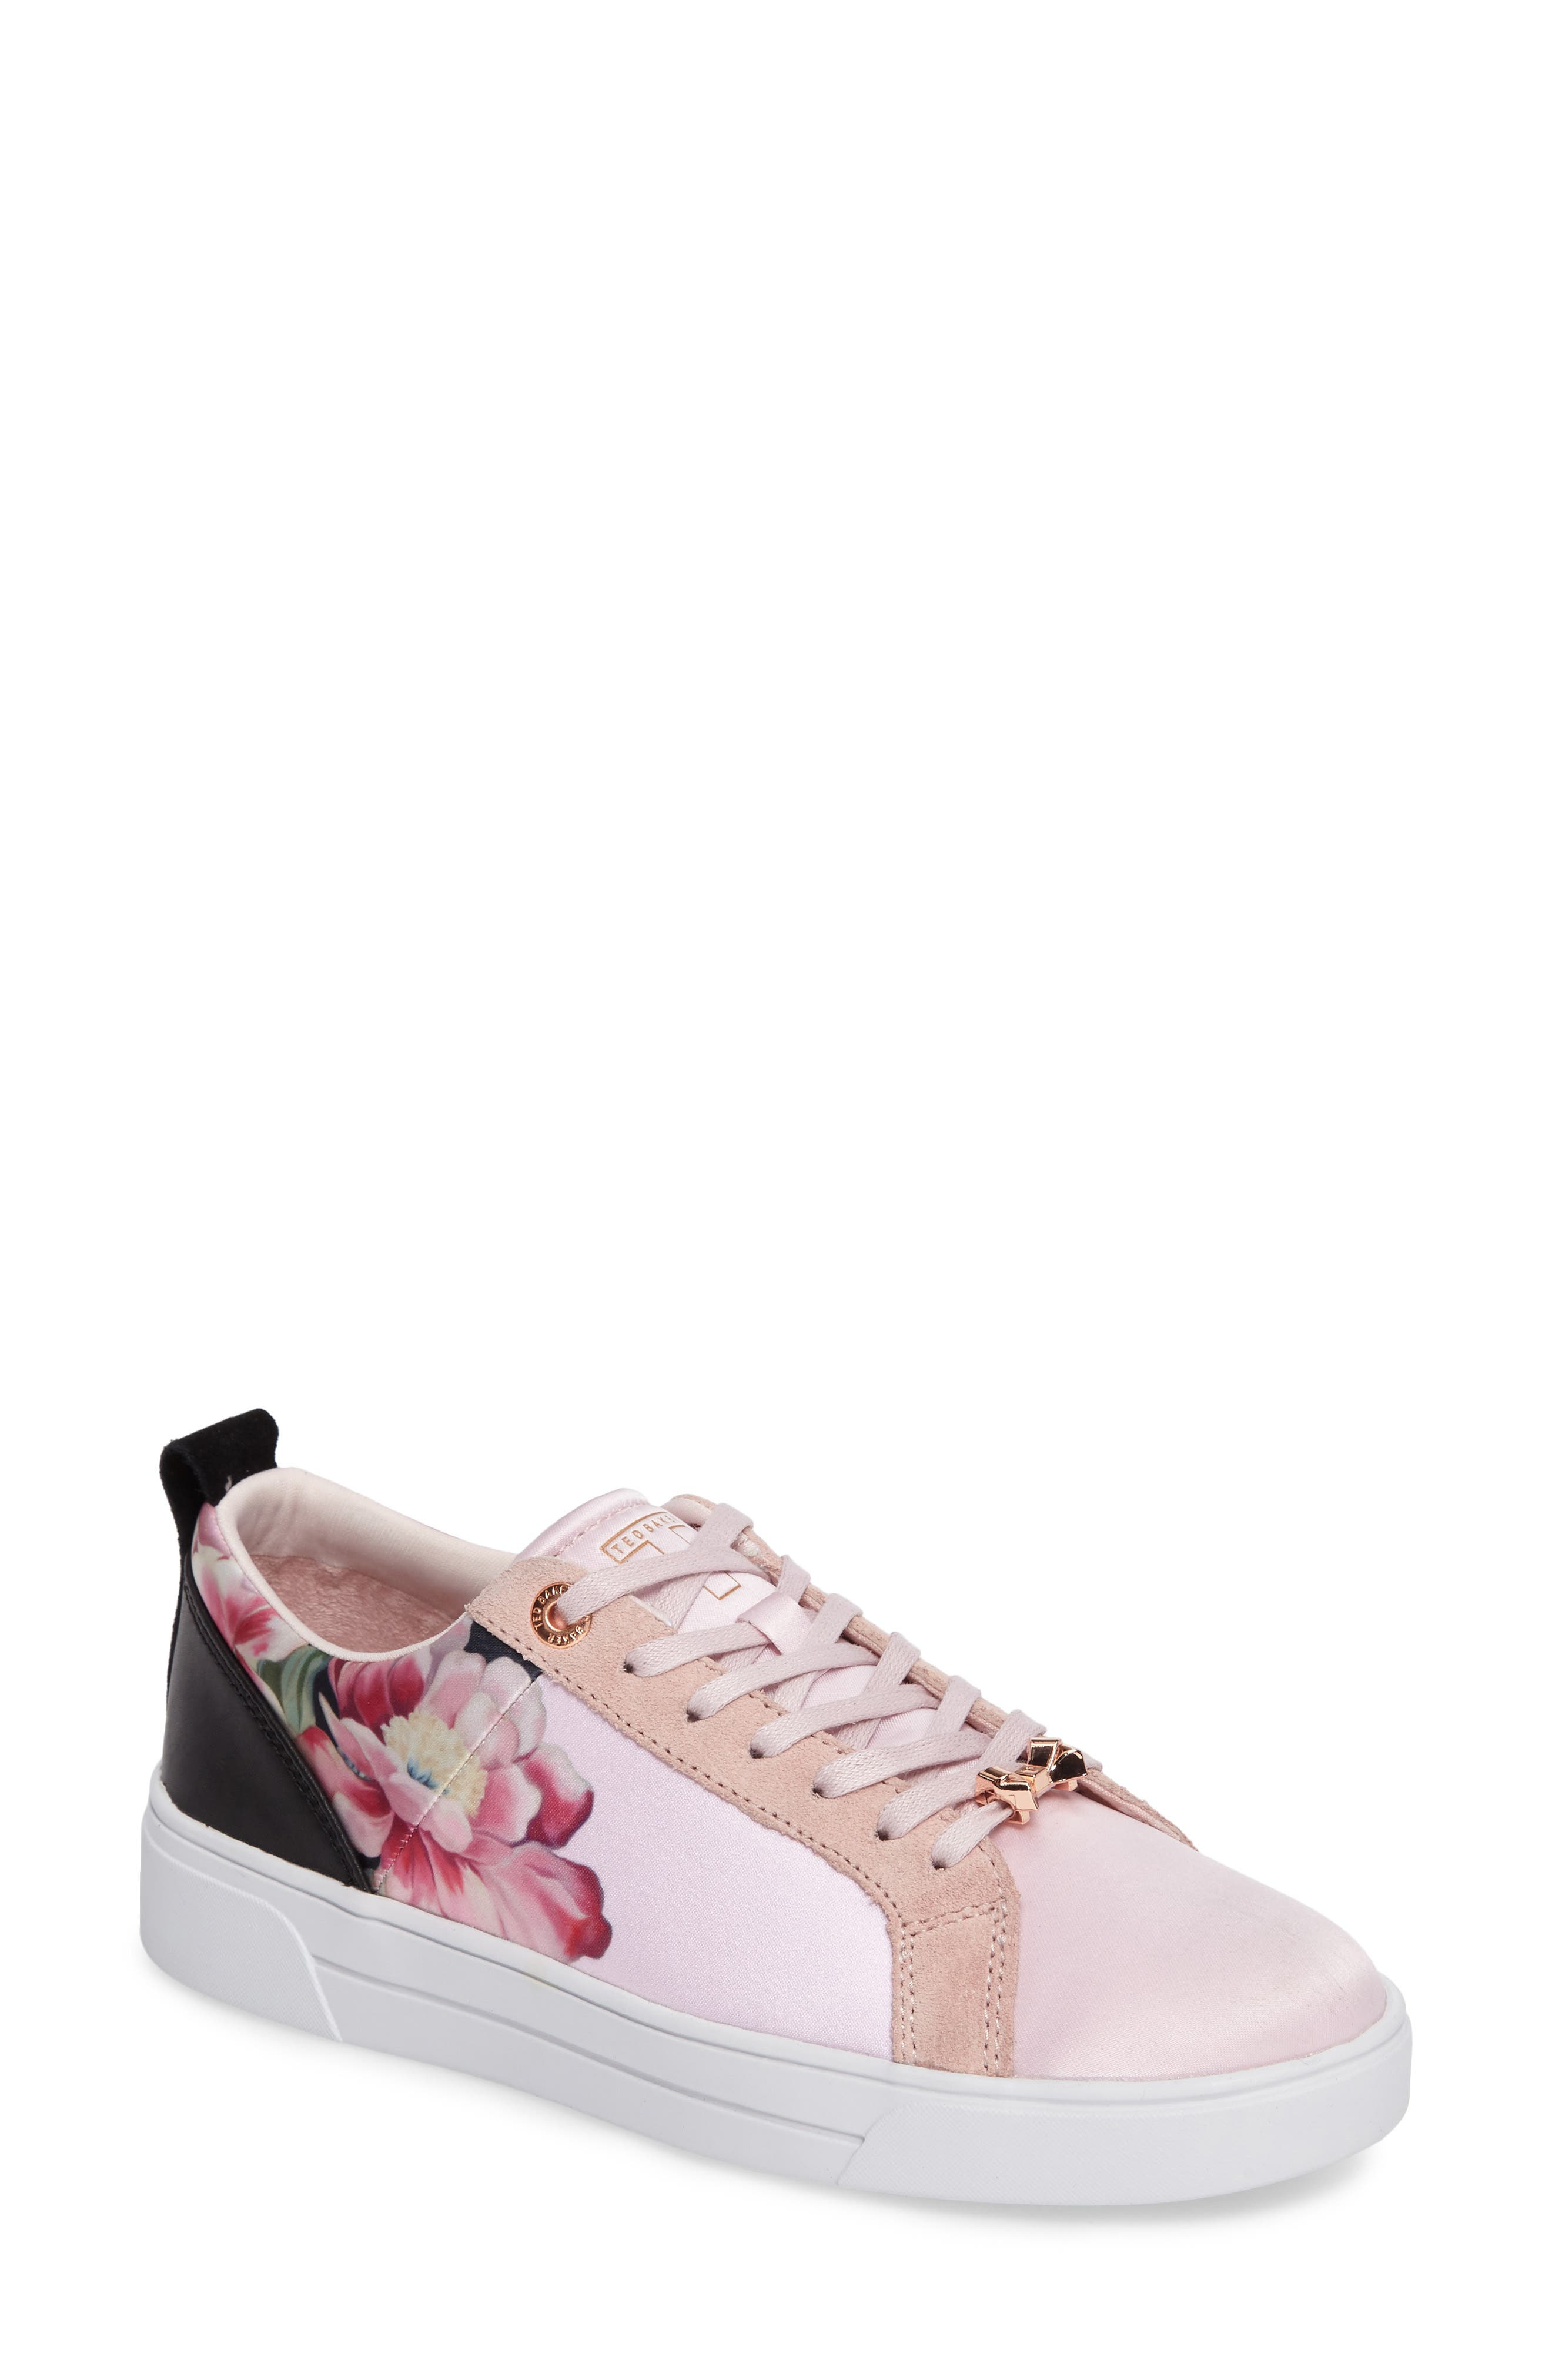 Alternate Image 1 Selected - Ted Baker London Fushar Sneaker (Women)